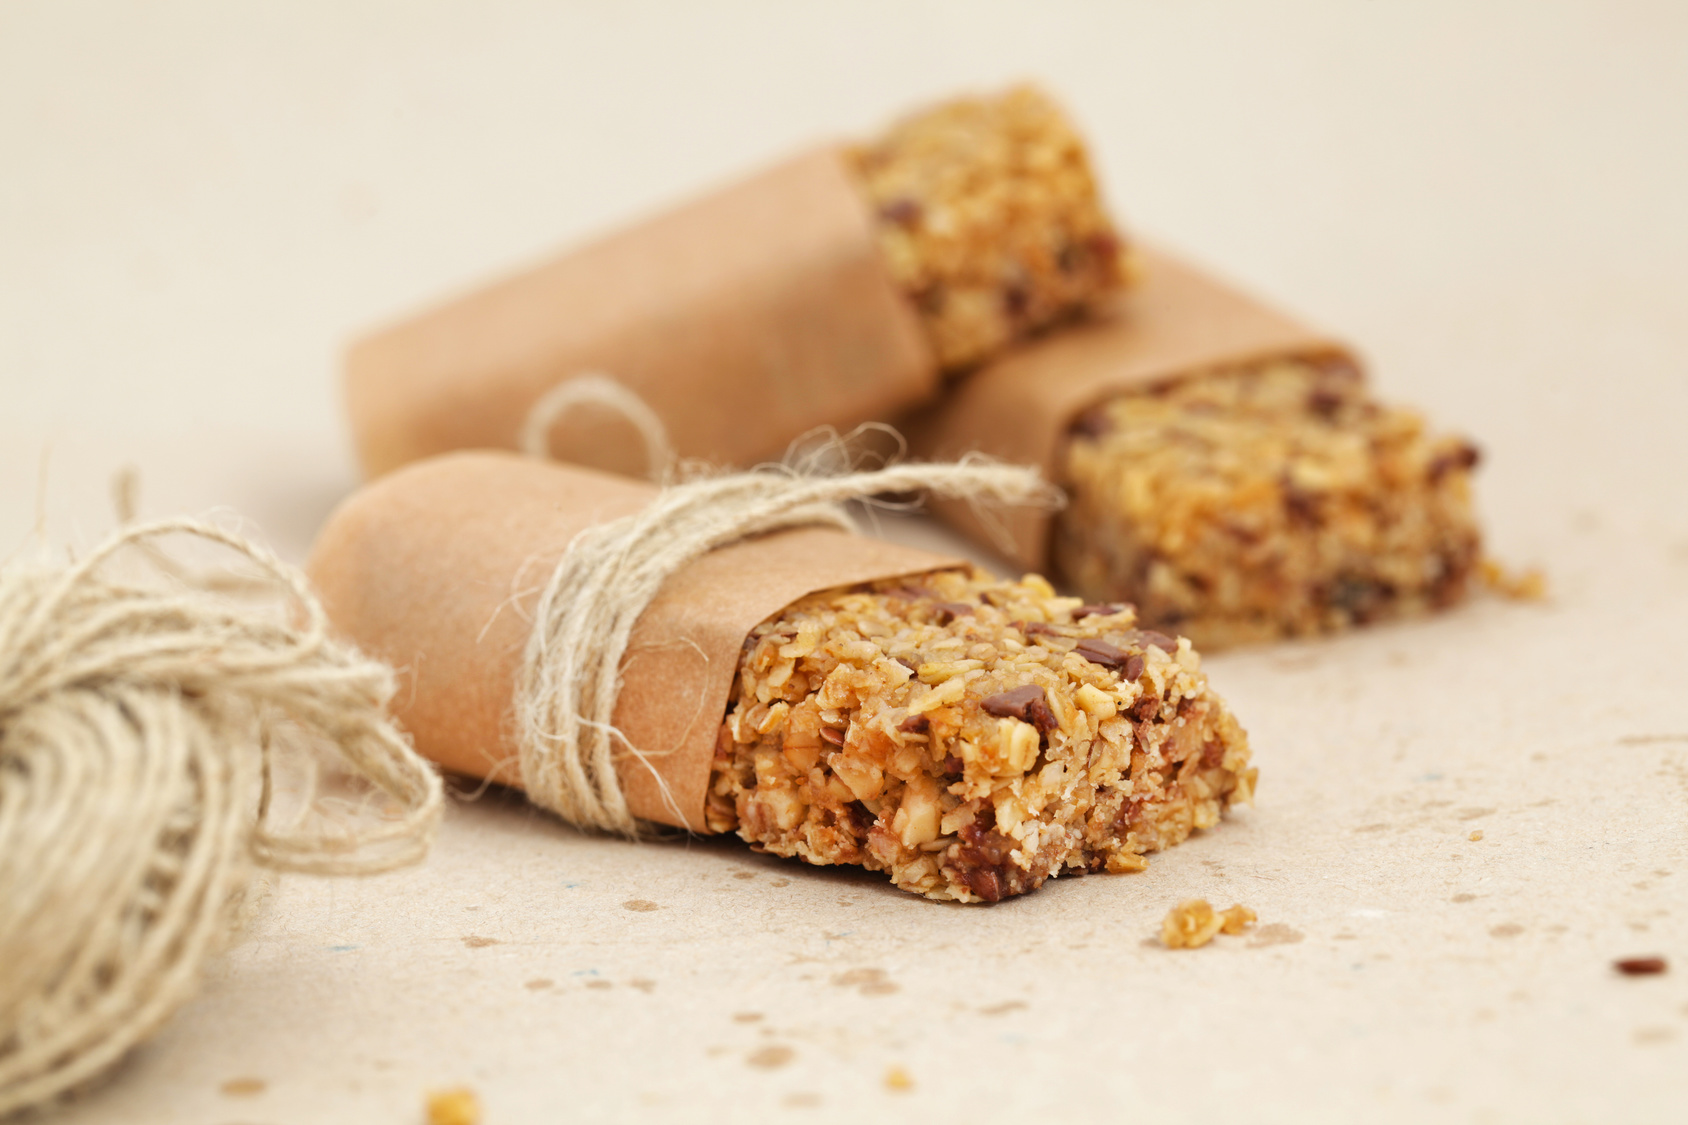 How To Make Sure Your Energy Bar Is ACTUALLY Healthy